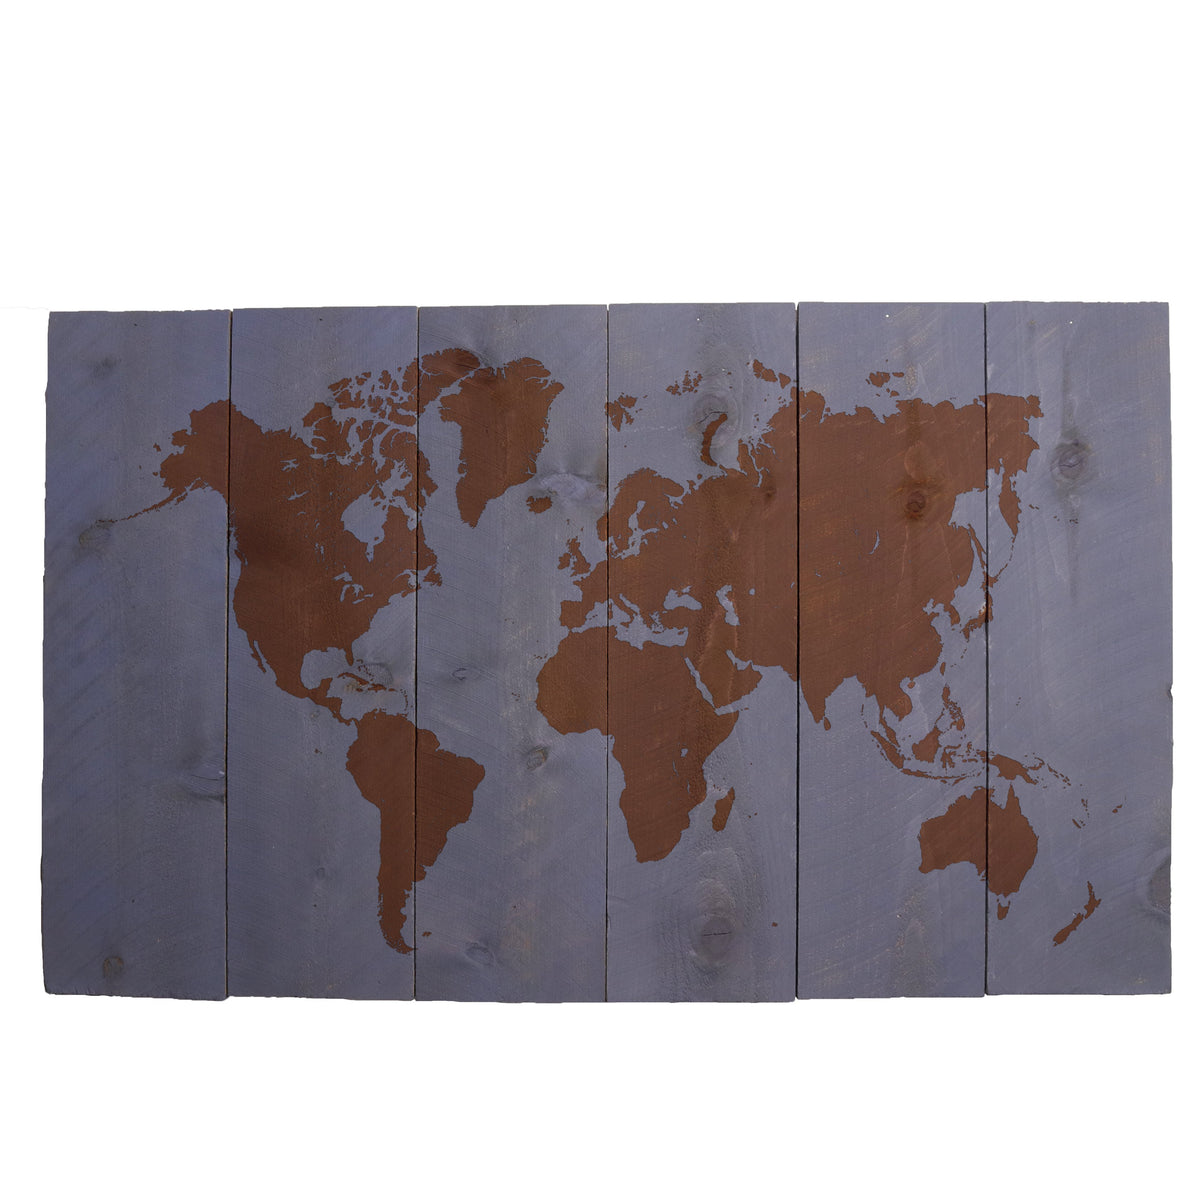 Vertical Wood Plank 33x20 Gray - World Map w/Quote